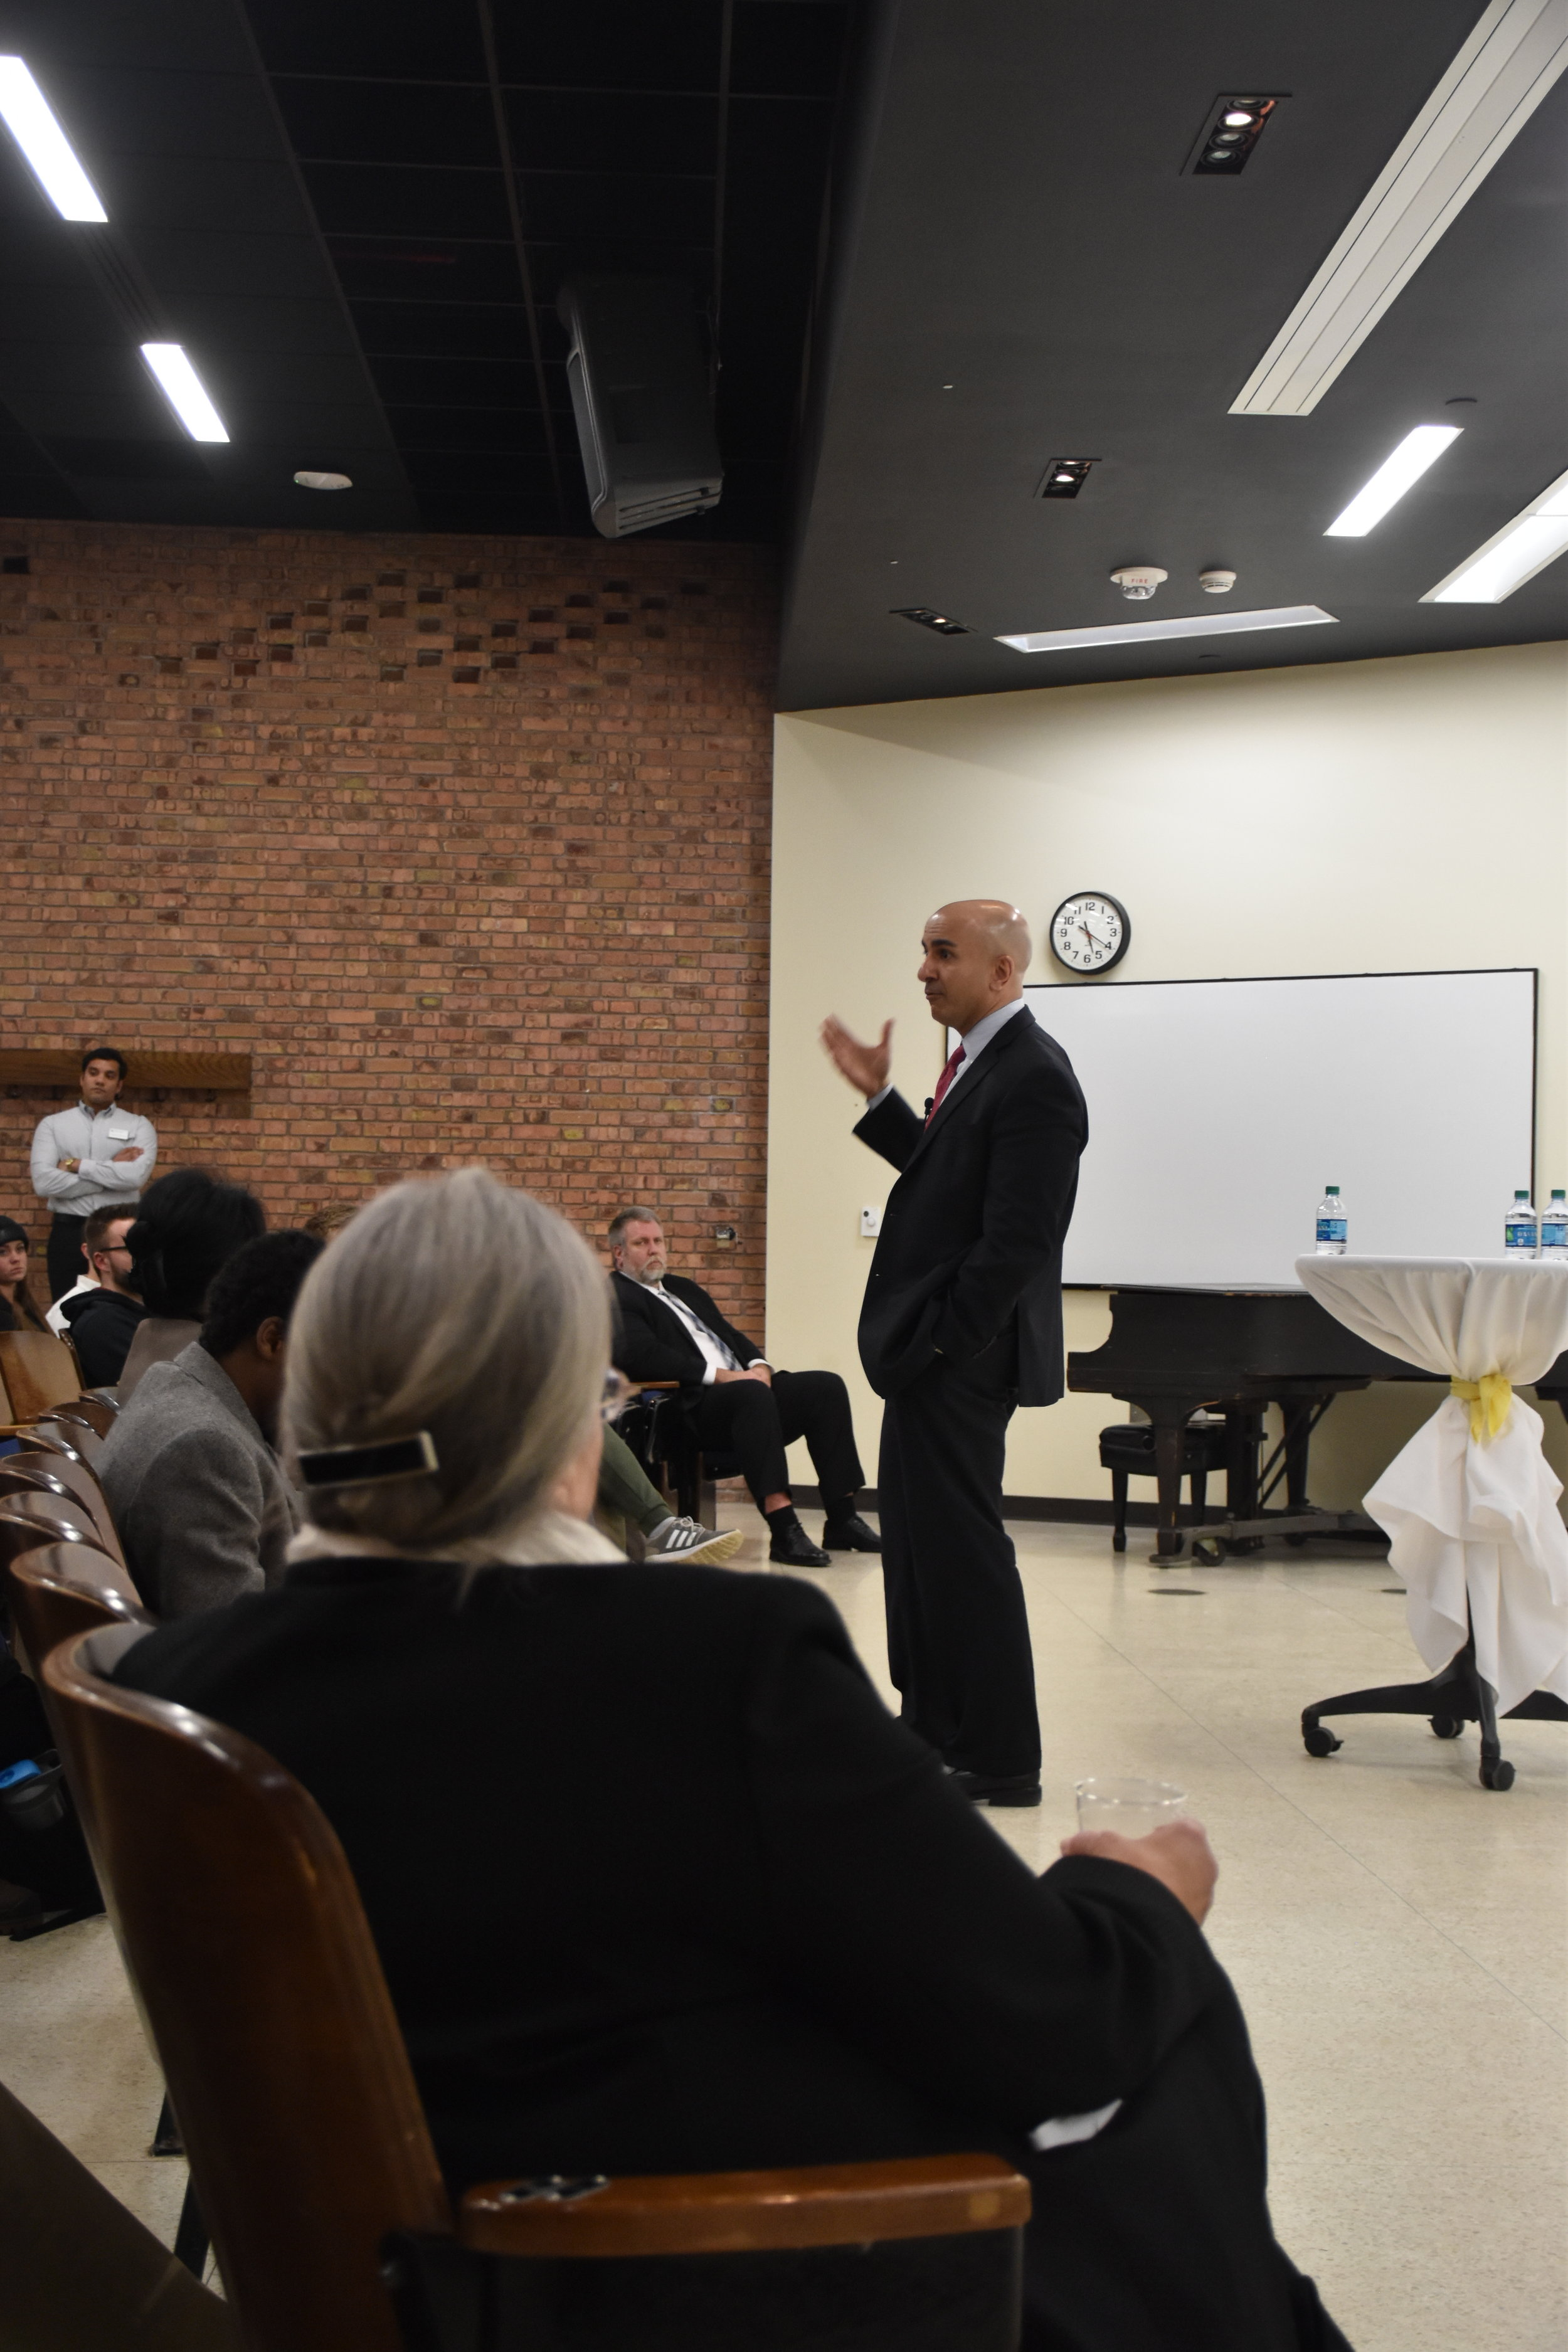 LSBE Dean Amy Hietapelto observes Pres. Kashkari during his recent Q/A forum in Montague Hall. Photo by Connor Shea